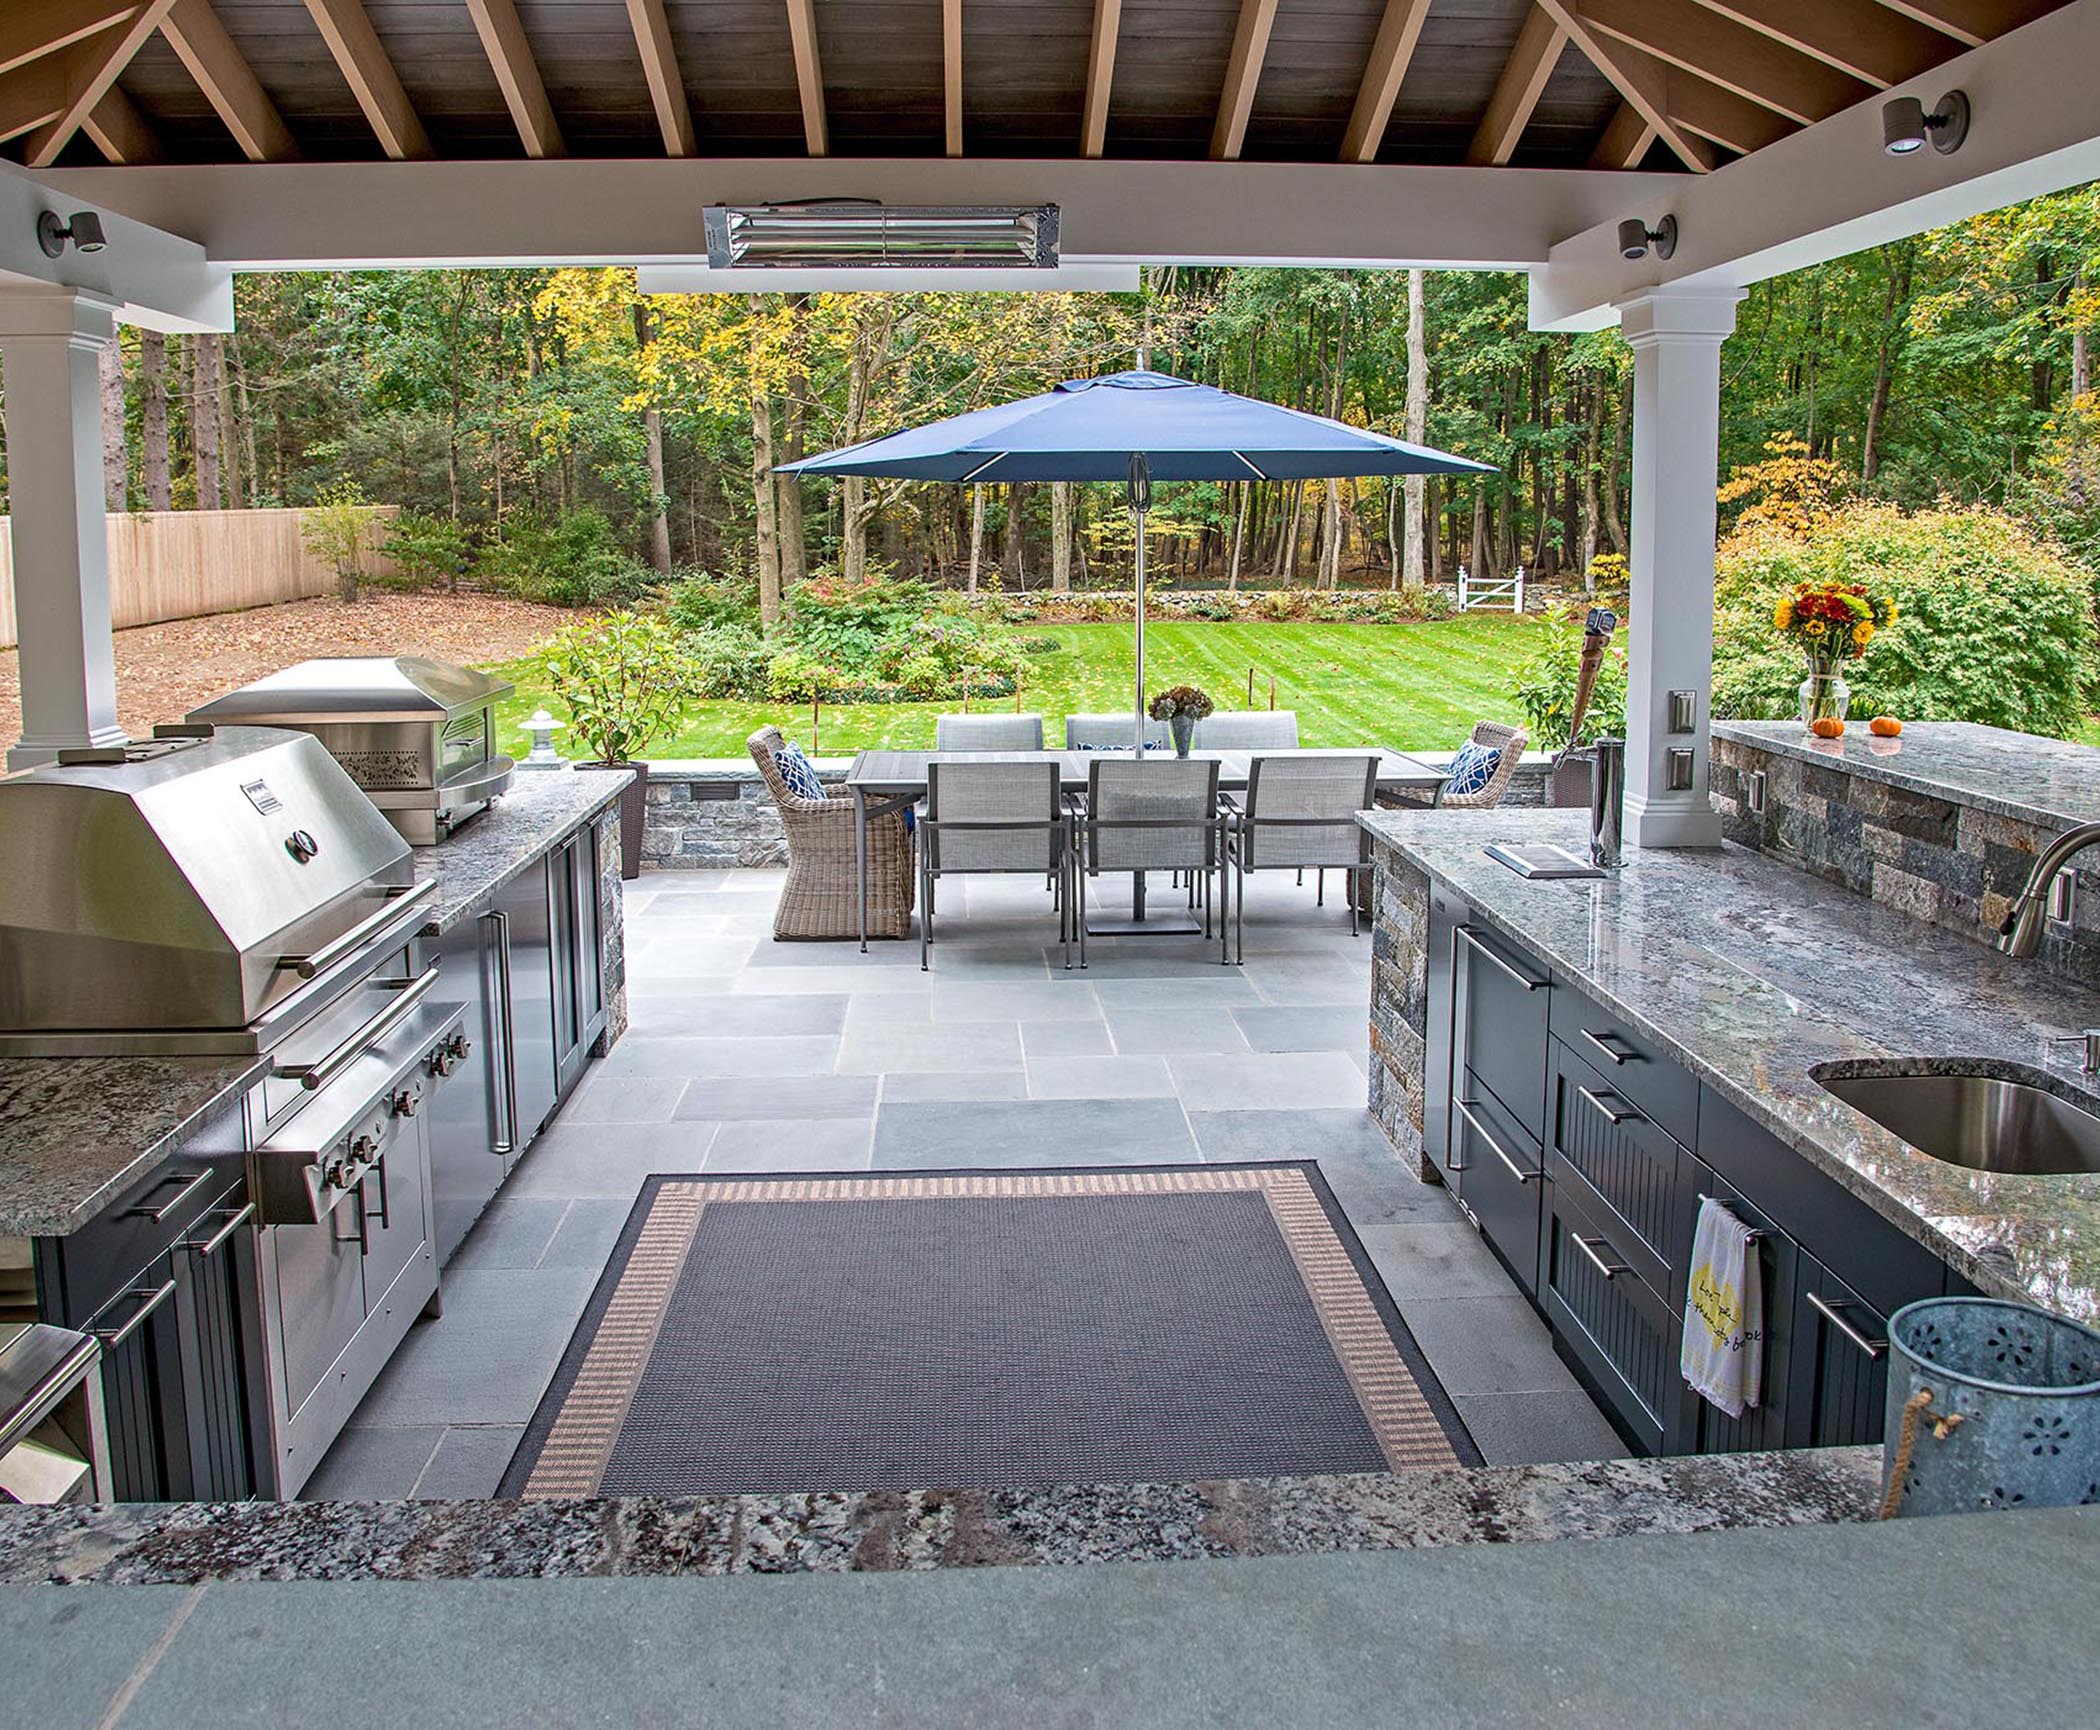 Outdoor kitchen ideas upgrade your barbecue area to for Outside barbecue area design